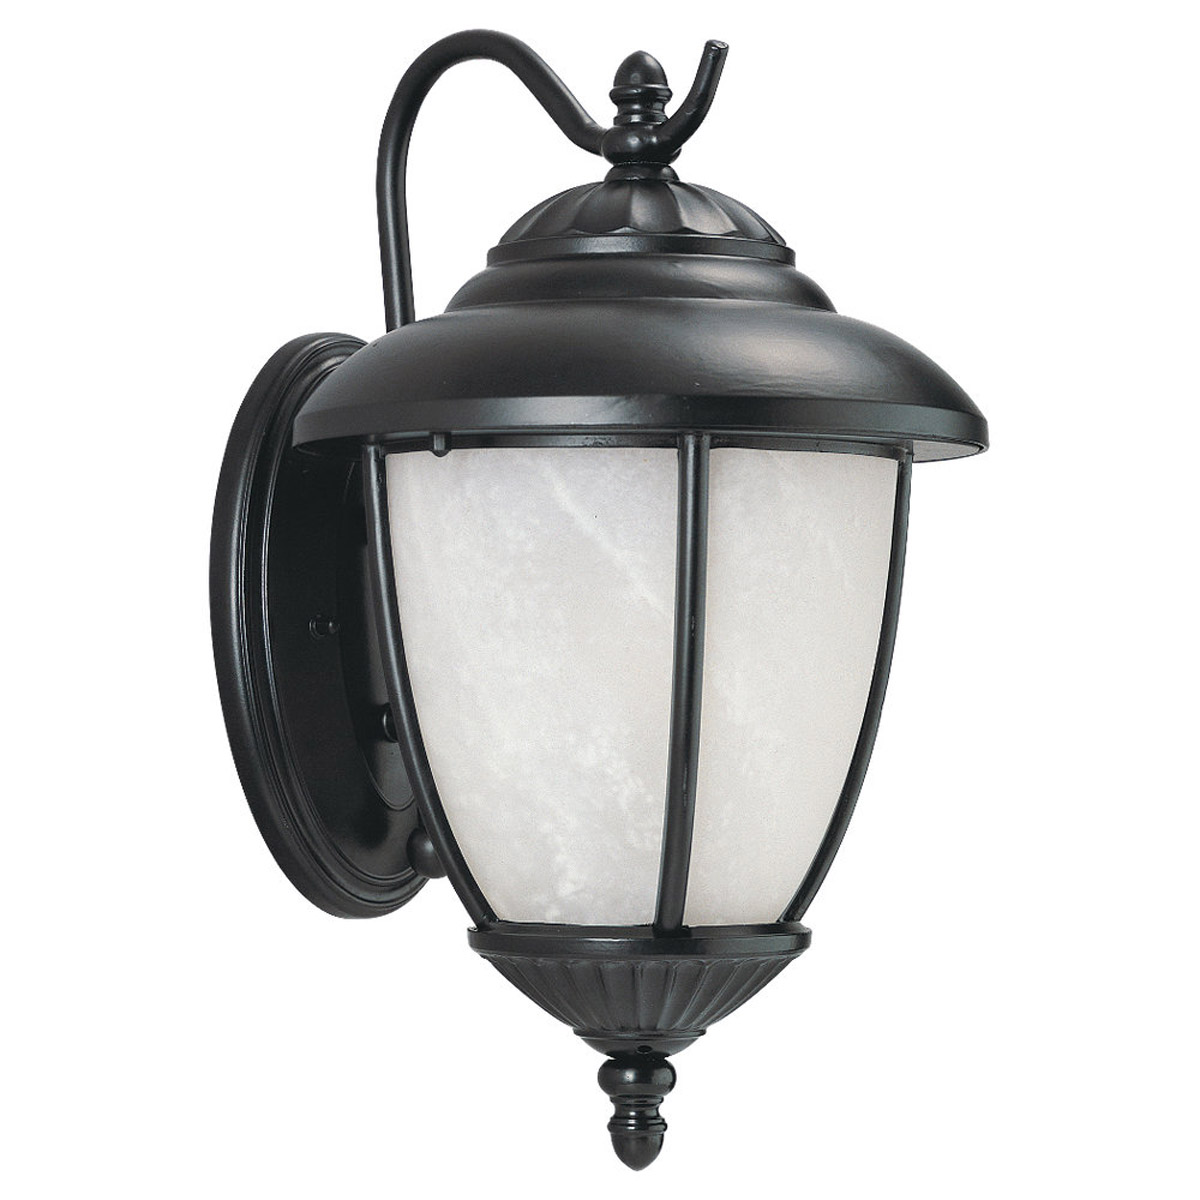 Sea Gull 89049PBLE-12 Yorktowne 1 Light 13 inch Black Outdoor Wall Lantern in Photocell, Energy Efficient photo